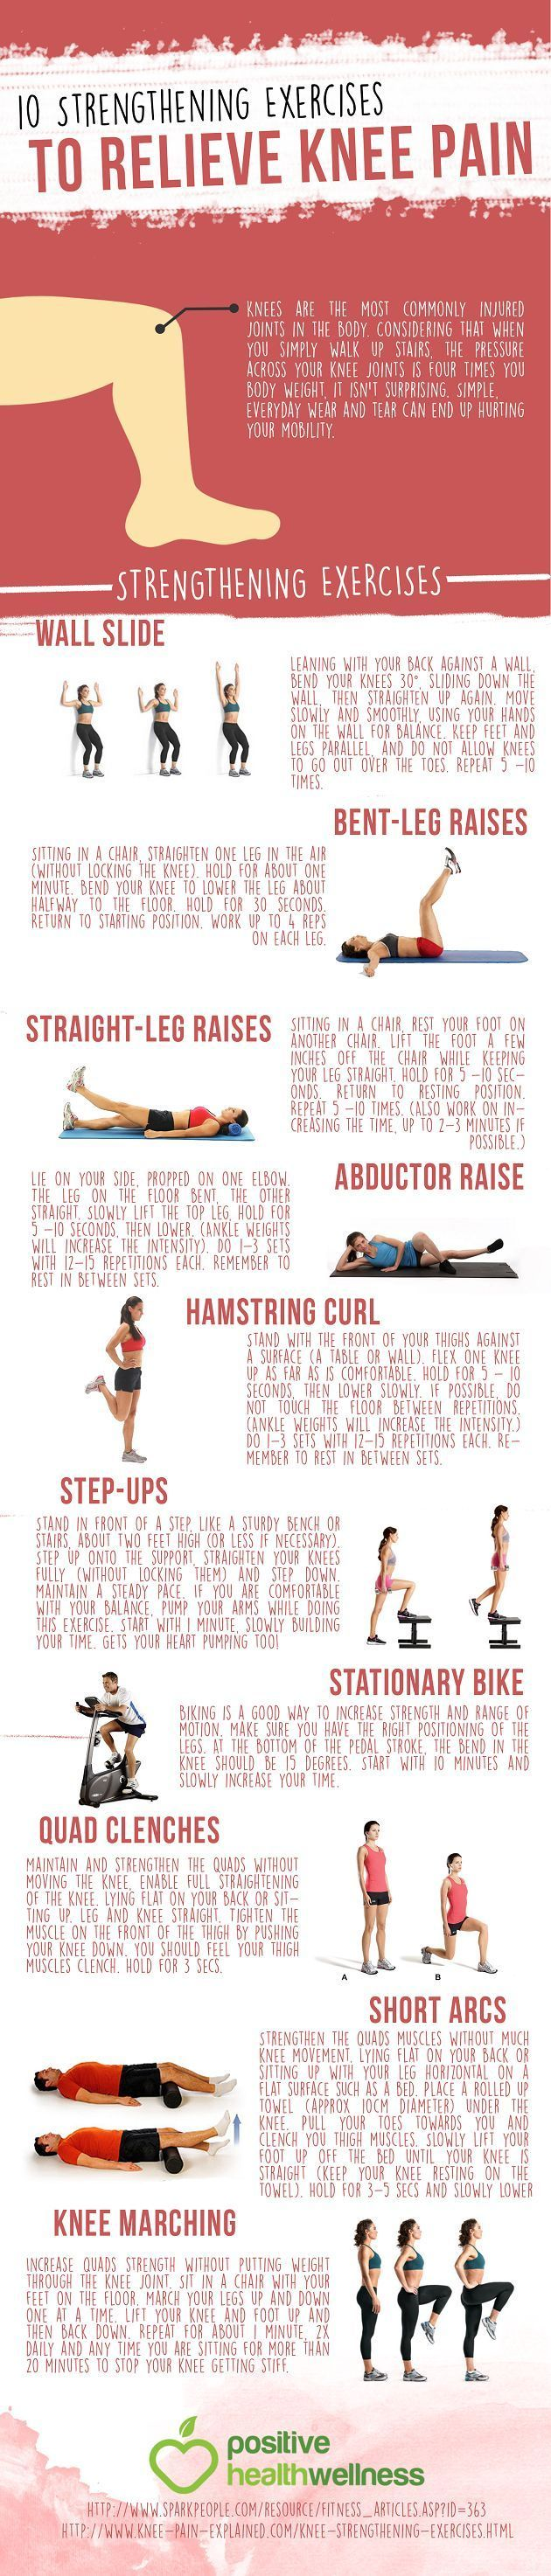 If you've been feeling pain around your knee area then these 10 simple exercises might help relieve knee pain perhaps get rid of it.